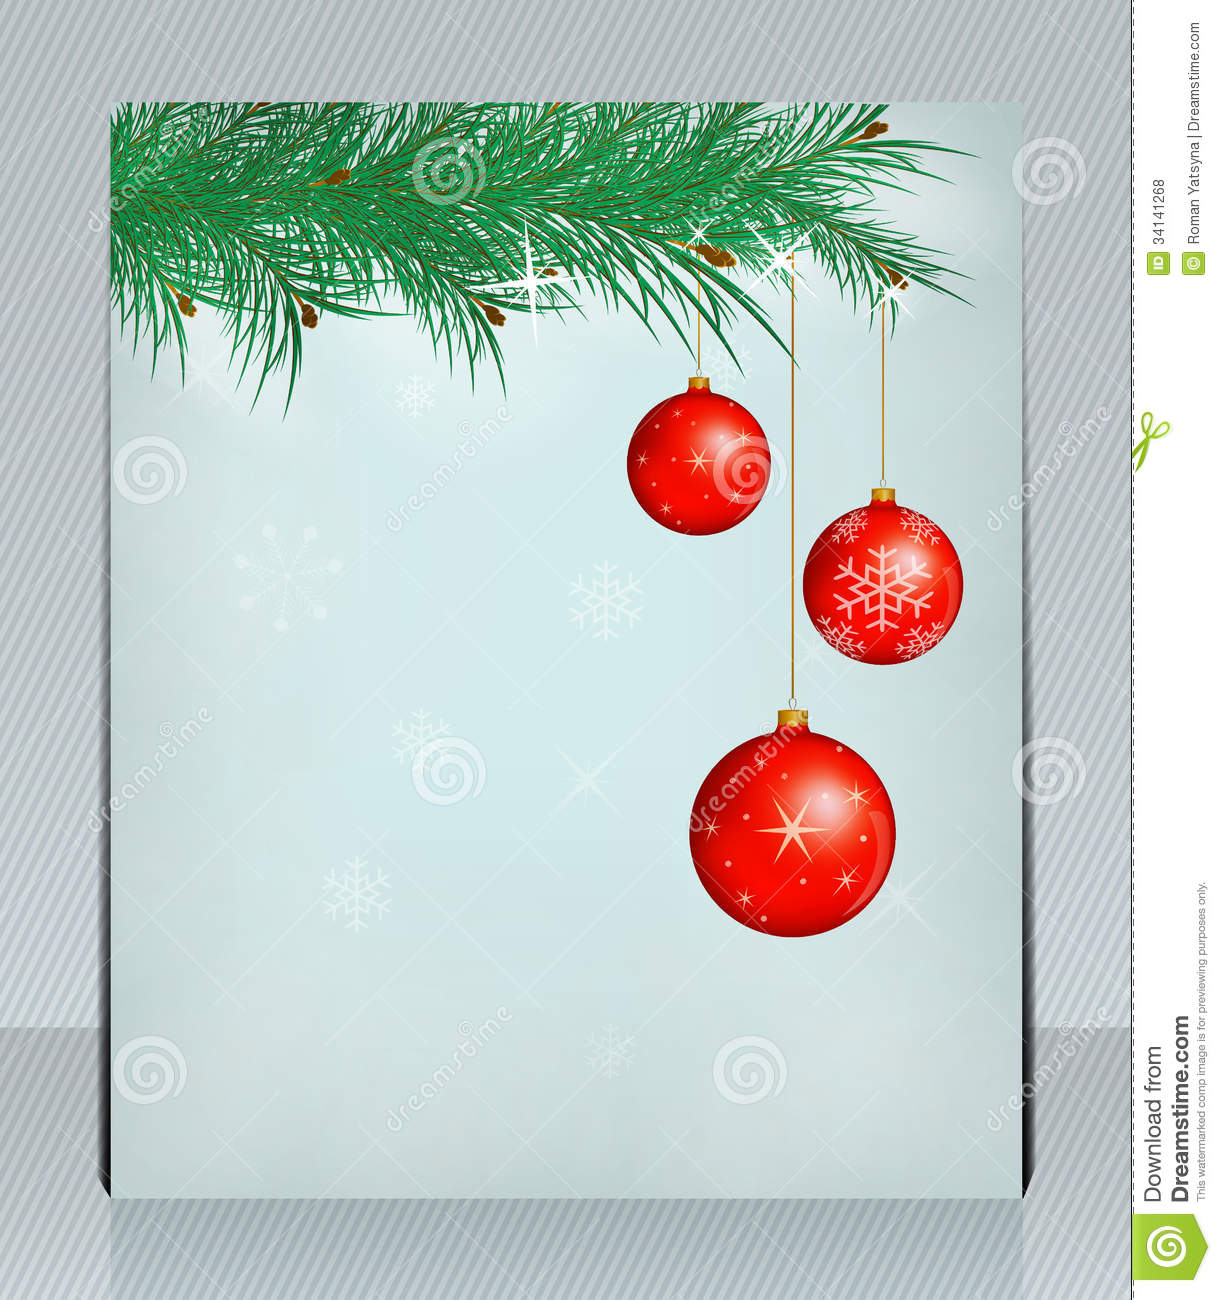 Holiday greeting card with christmas balls can be stock vector holiday greeting card with christmas balls can be kristyandbryce Image collections